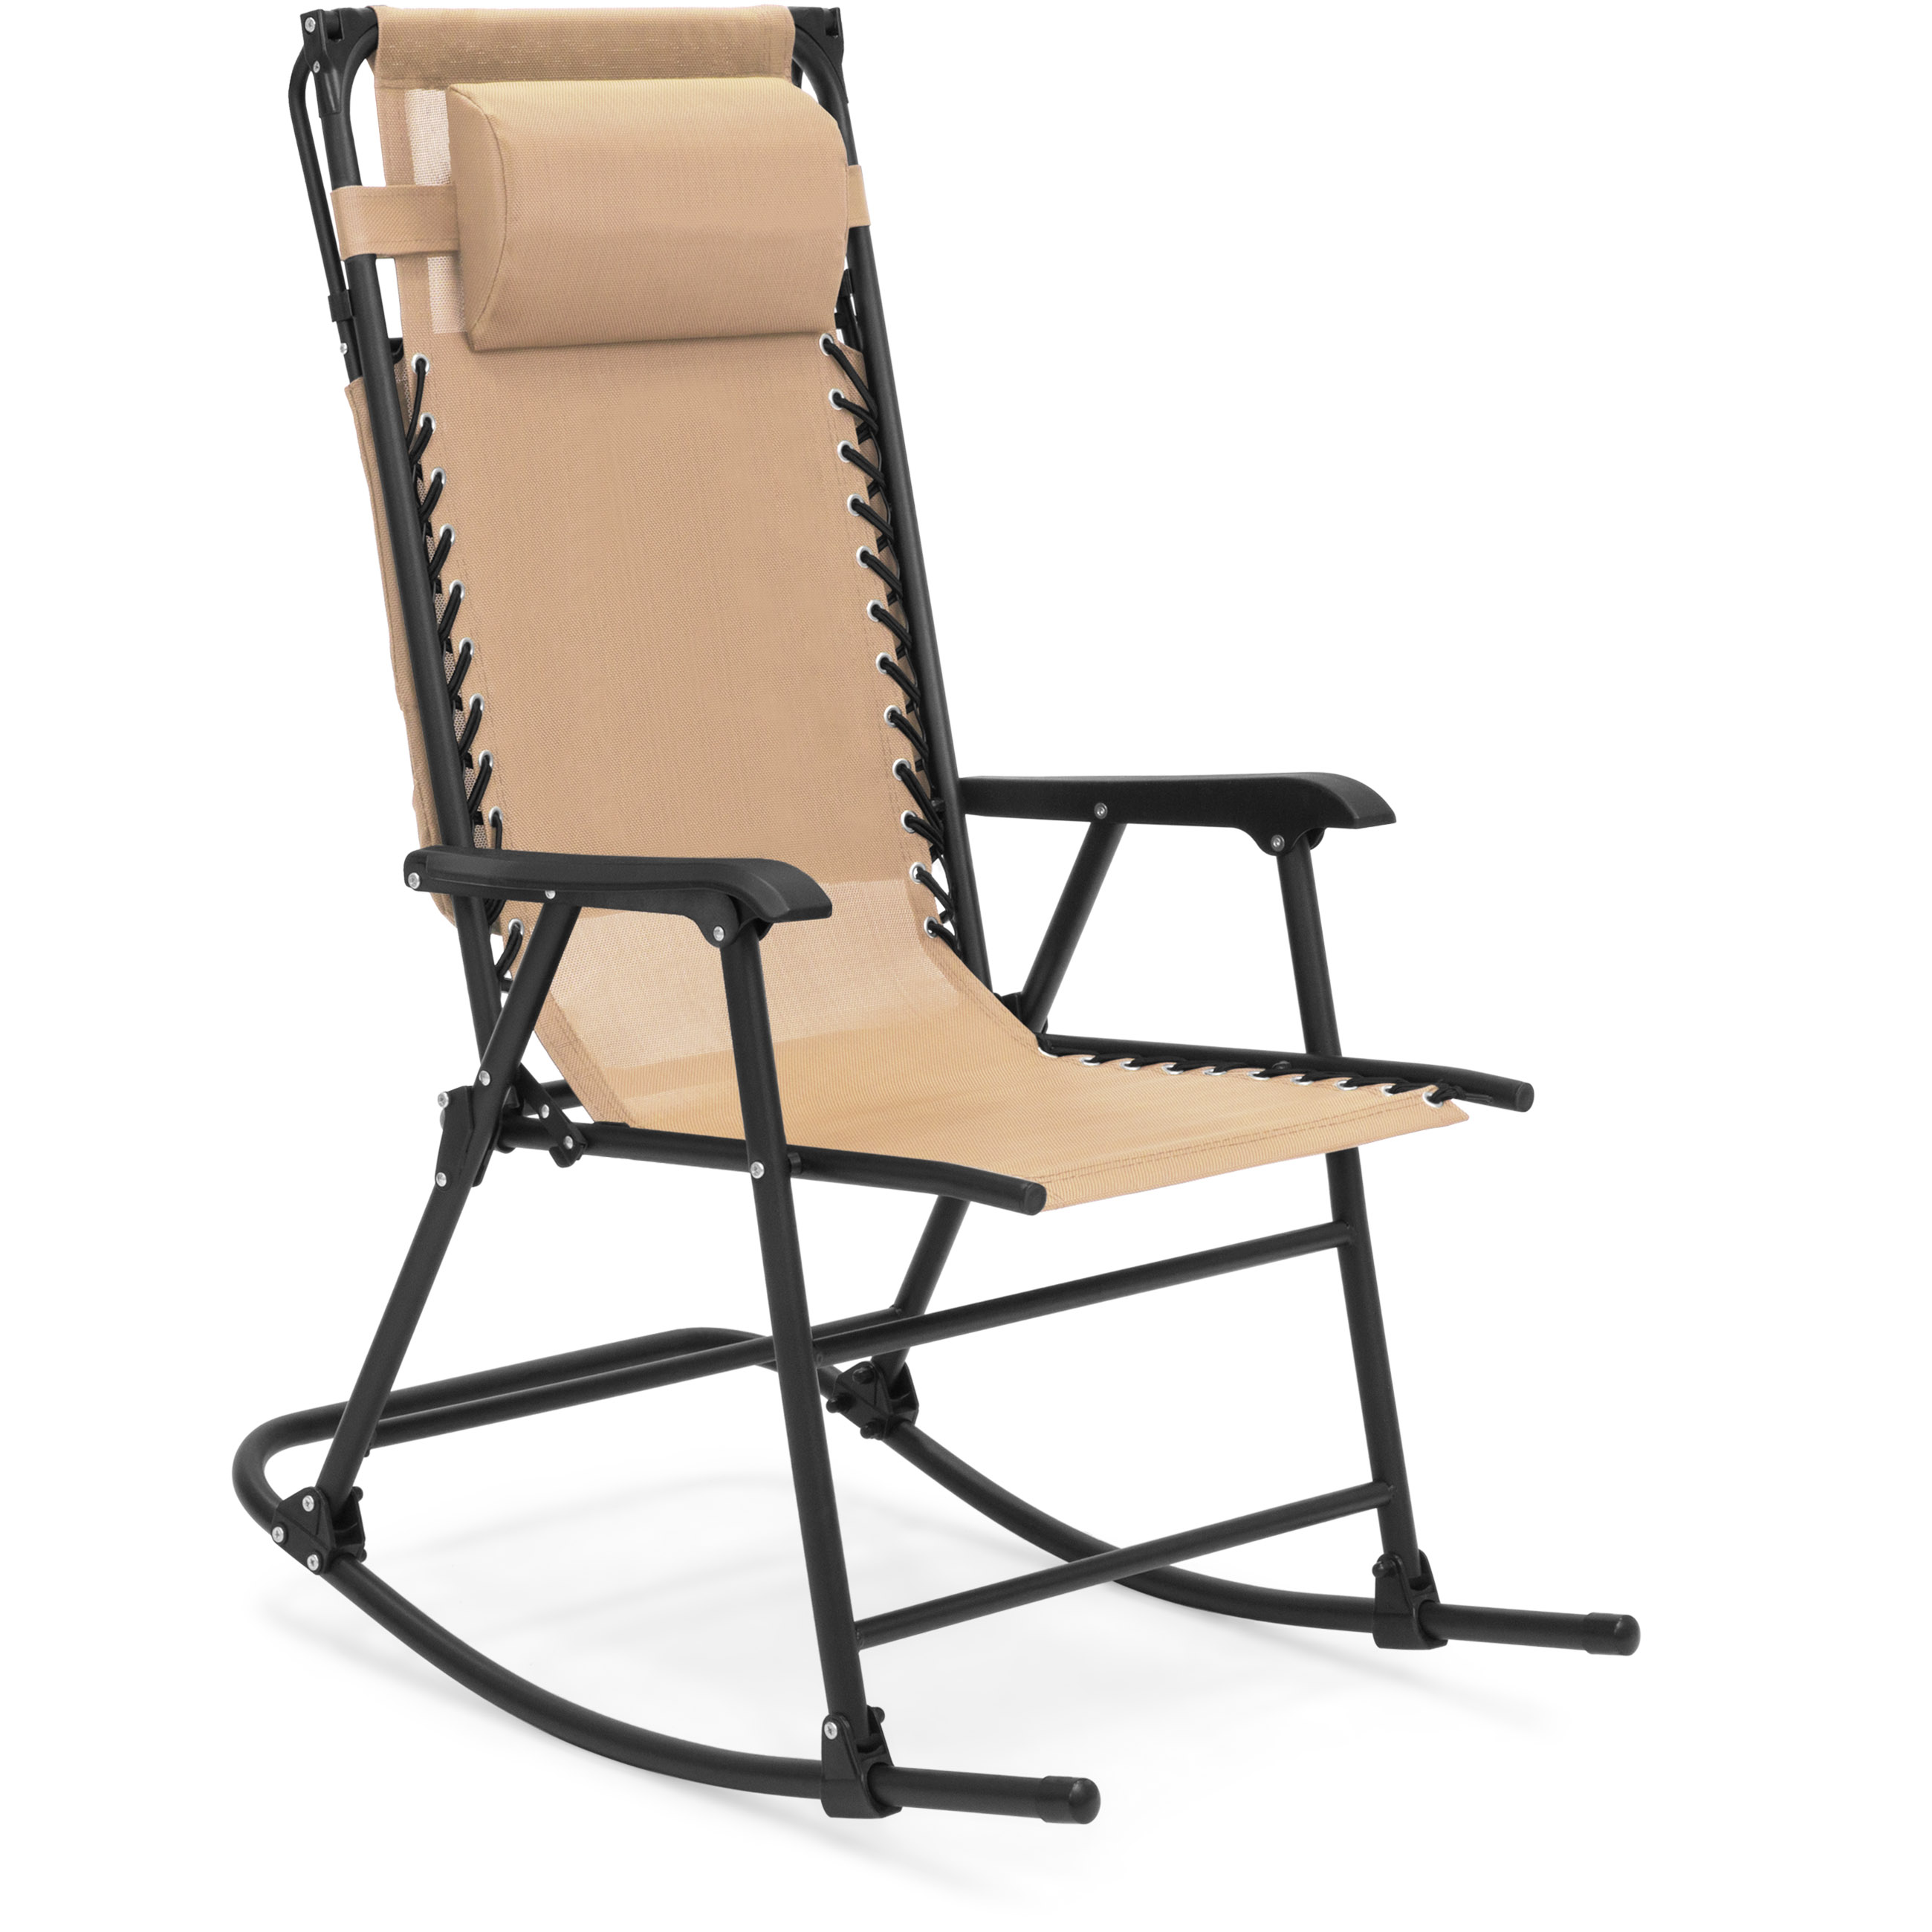 Foldable Patio Chairs Best Choice Products Foldable Zero Gravity Rocking Patio Chair W Sunshade Canopy Tan